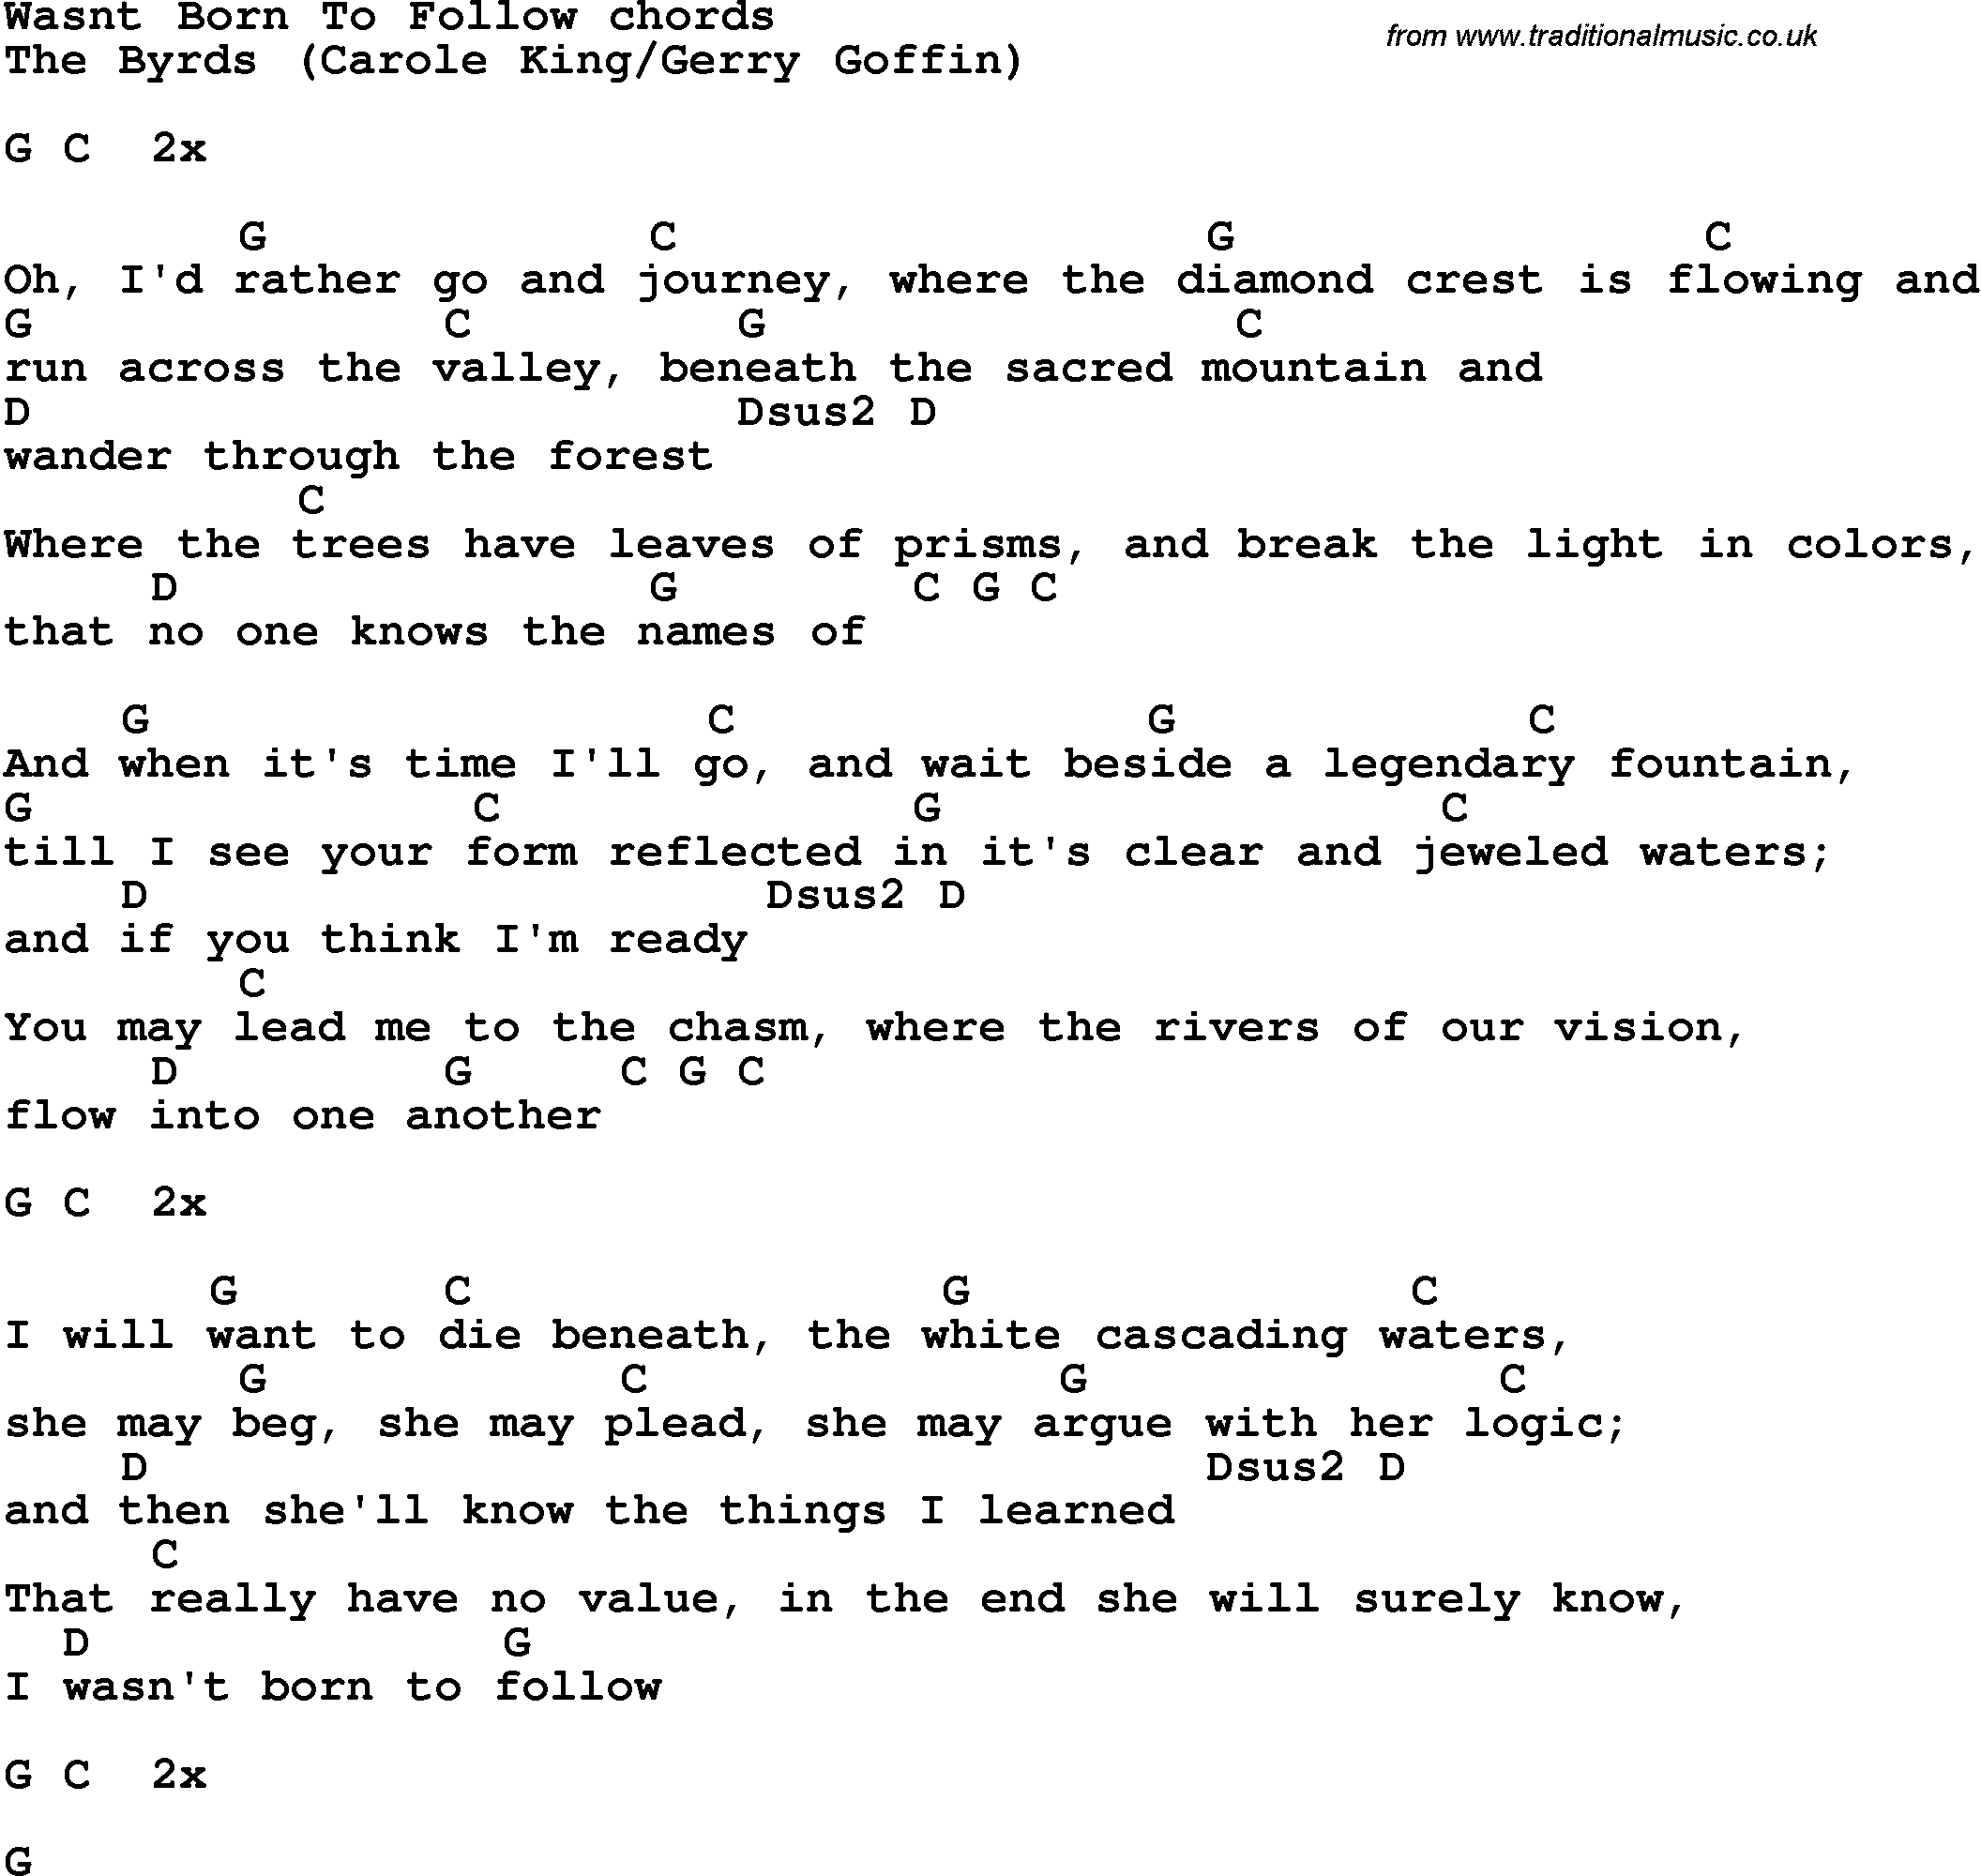 Song Lyrics With Guitar Chords For Wasnt Born To Follow